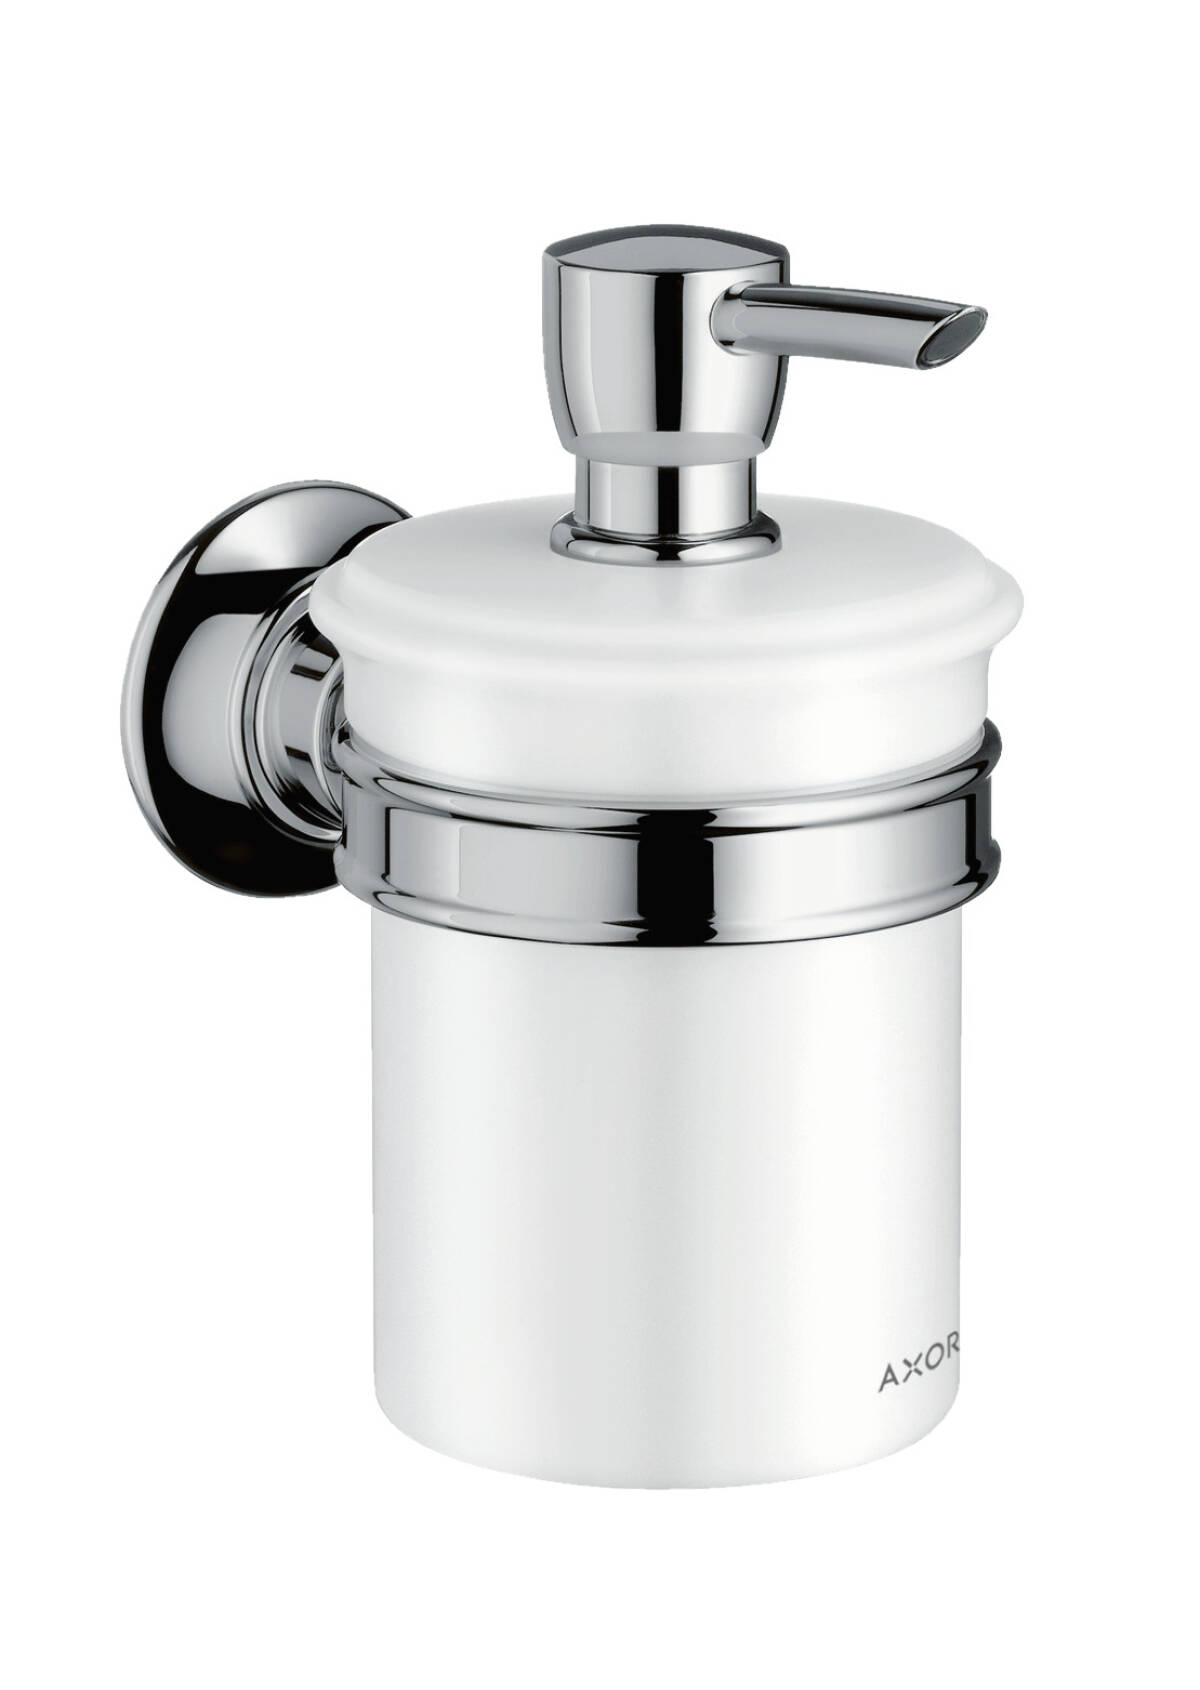 Liquid soap dispenser, Chrome, 42019000